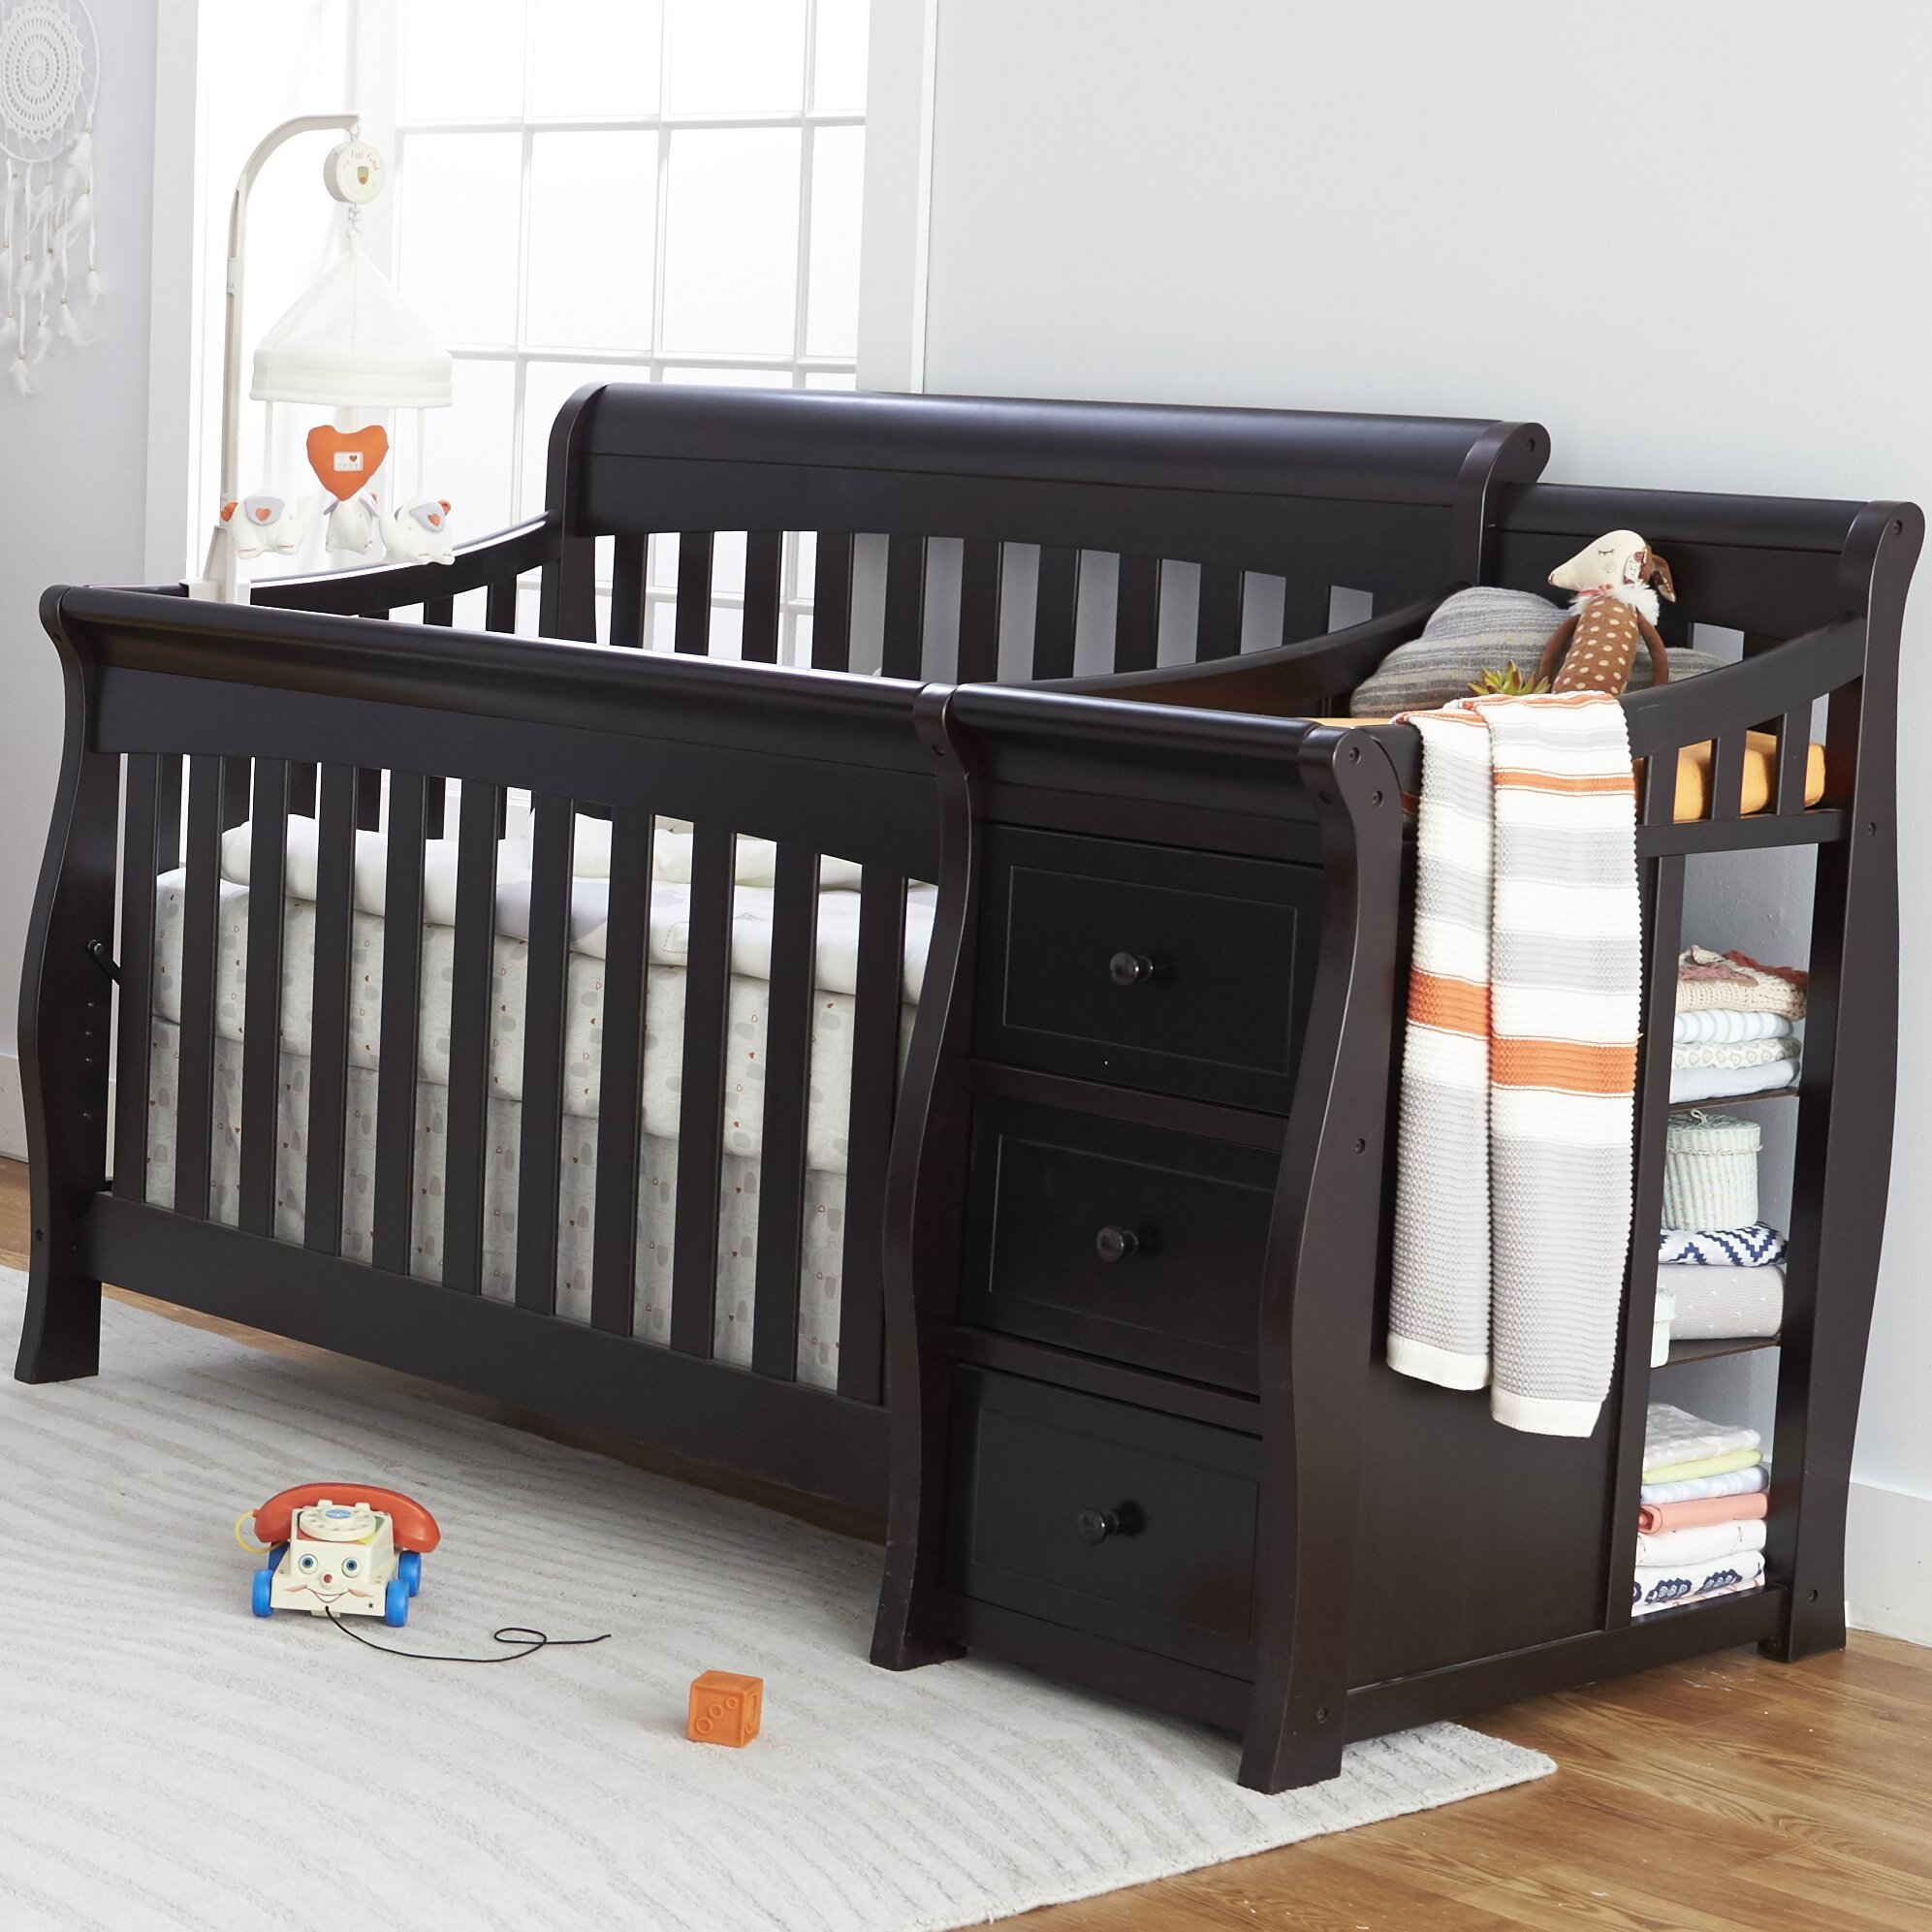 Sorelle Tuscany 4 In 1 Convertible Crib And Changer Reviews Wayfair